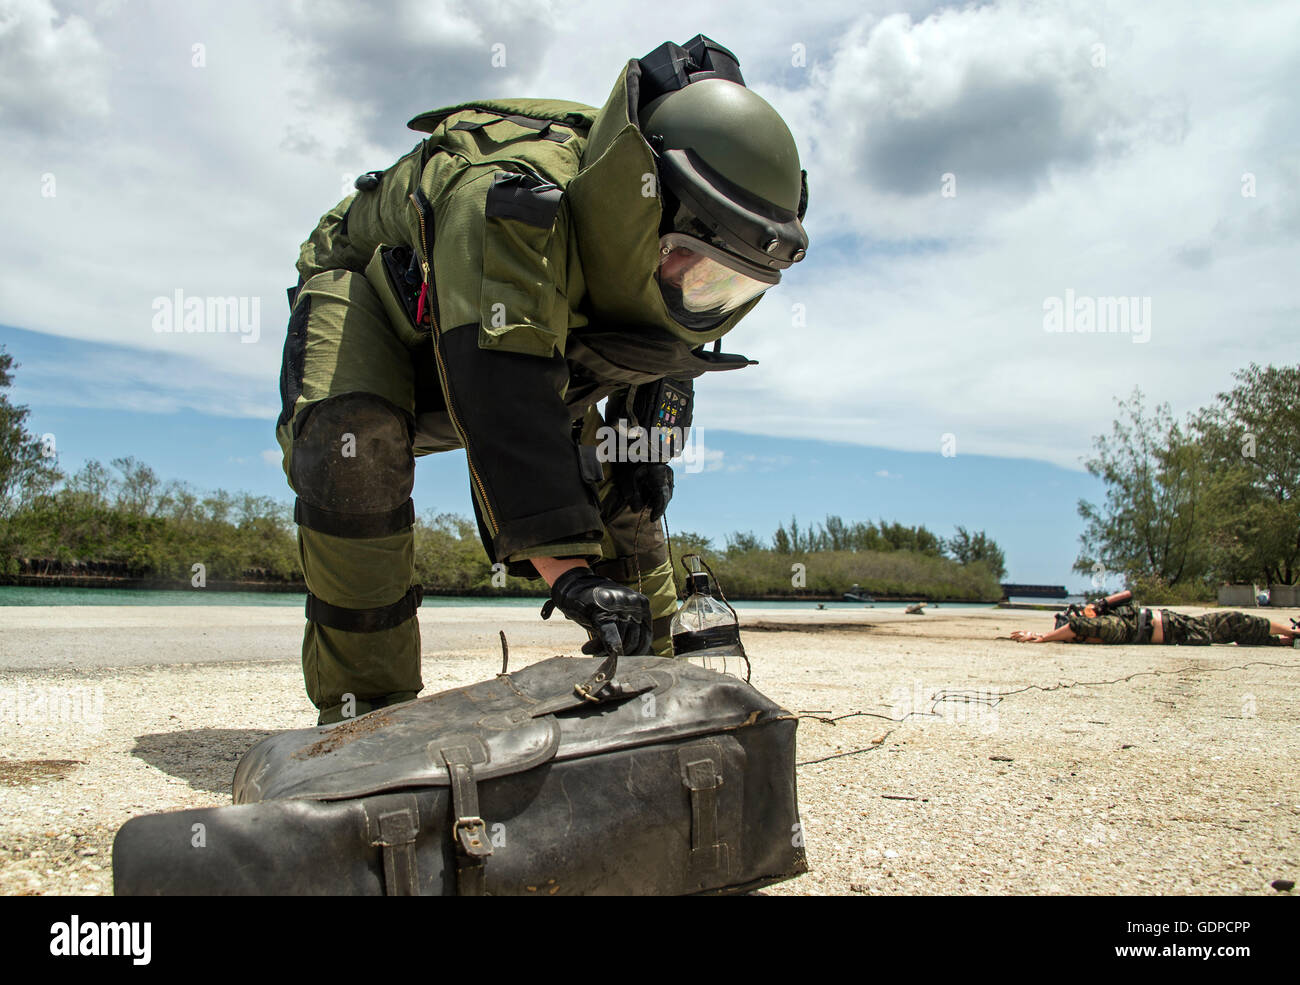 6aaff933ac May 18, 2016 - An Explosive Ordnance Disposal (EOD) technician inspects a  simulated